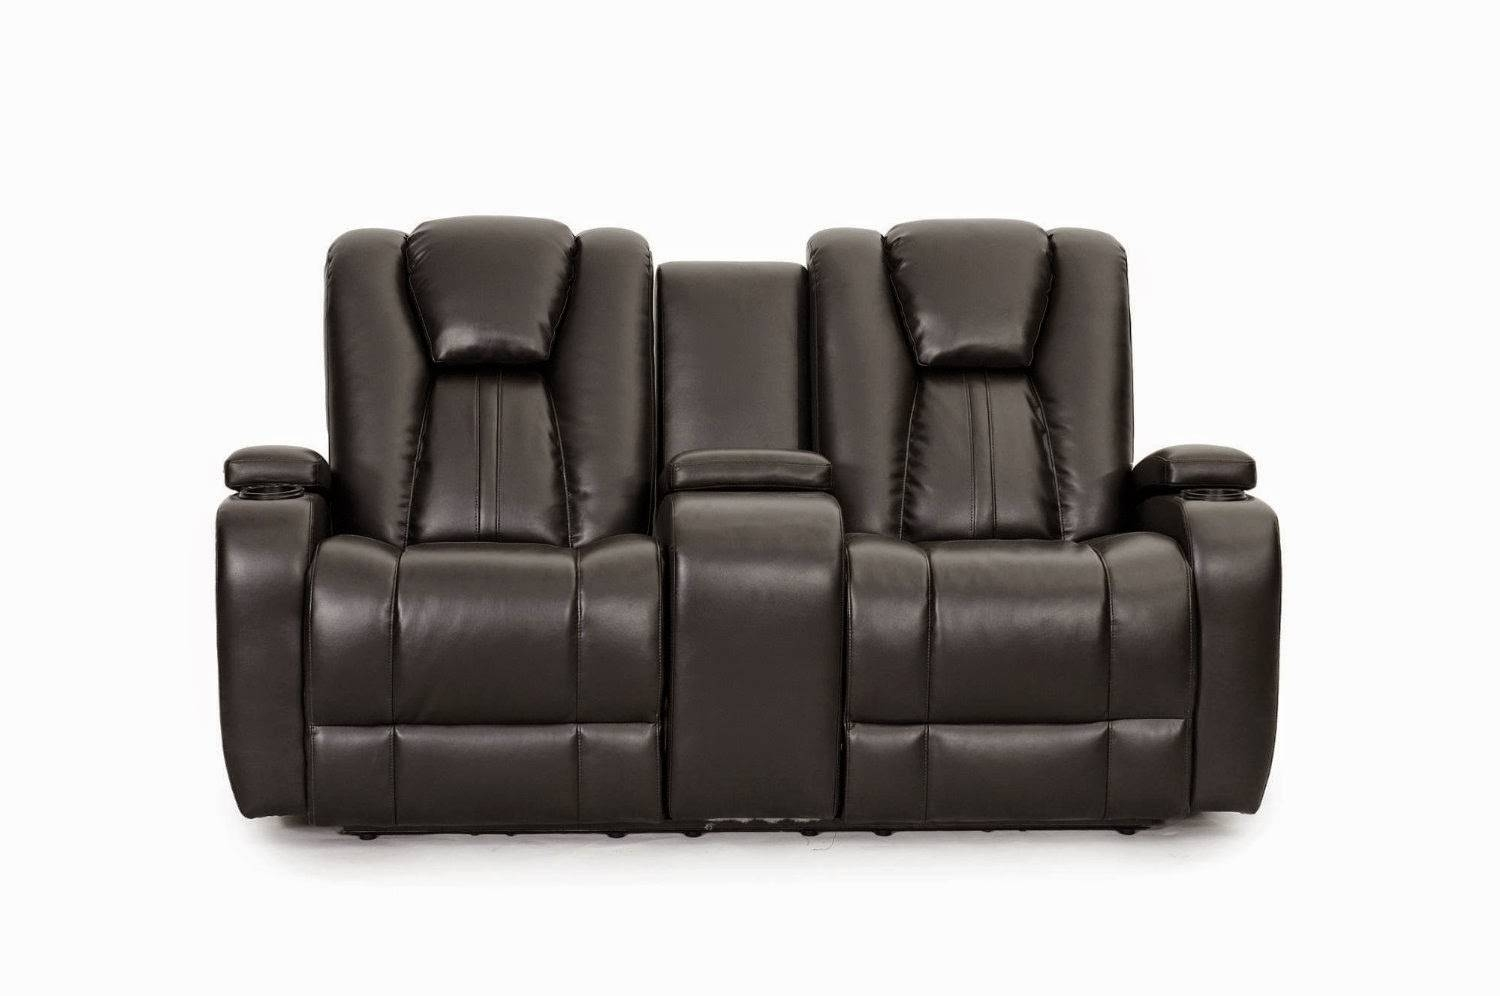 Modern Cheap Reclining Sofa Reviews: Reclining Sofa With Center With Sofas With Console (View 11 of 15)